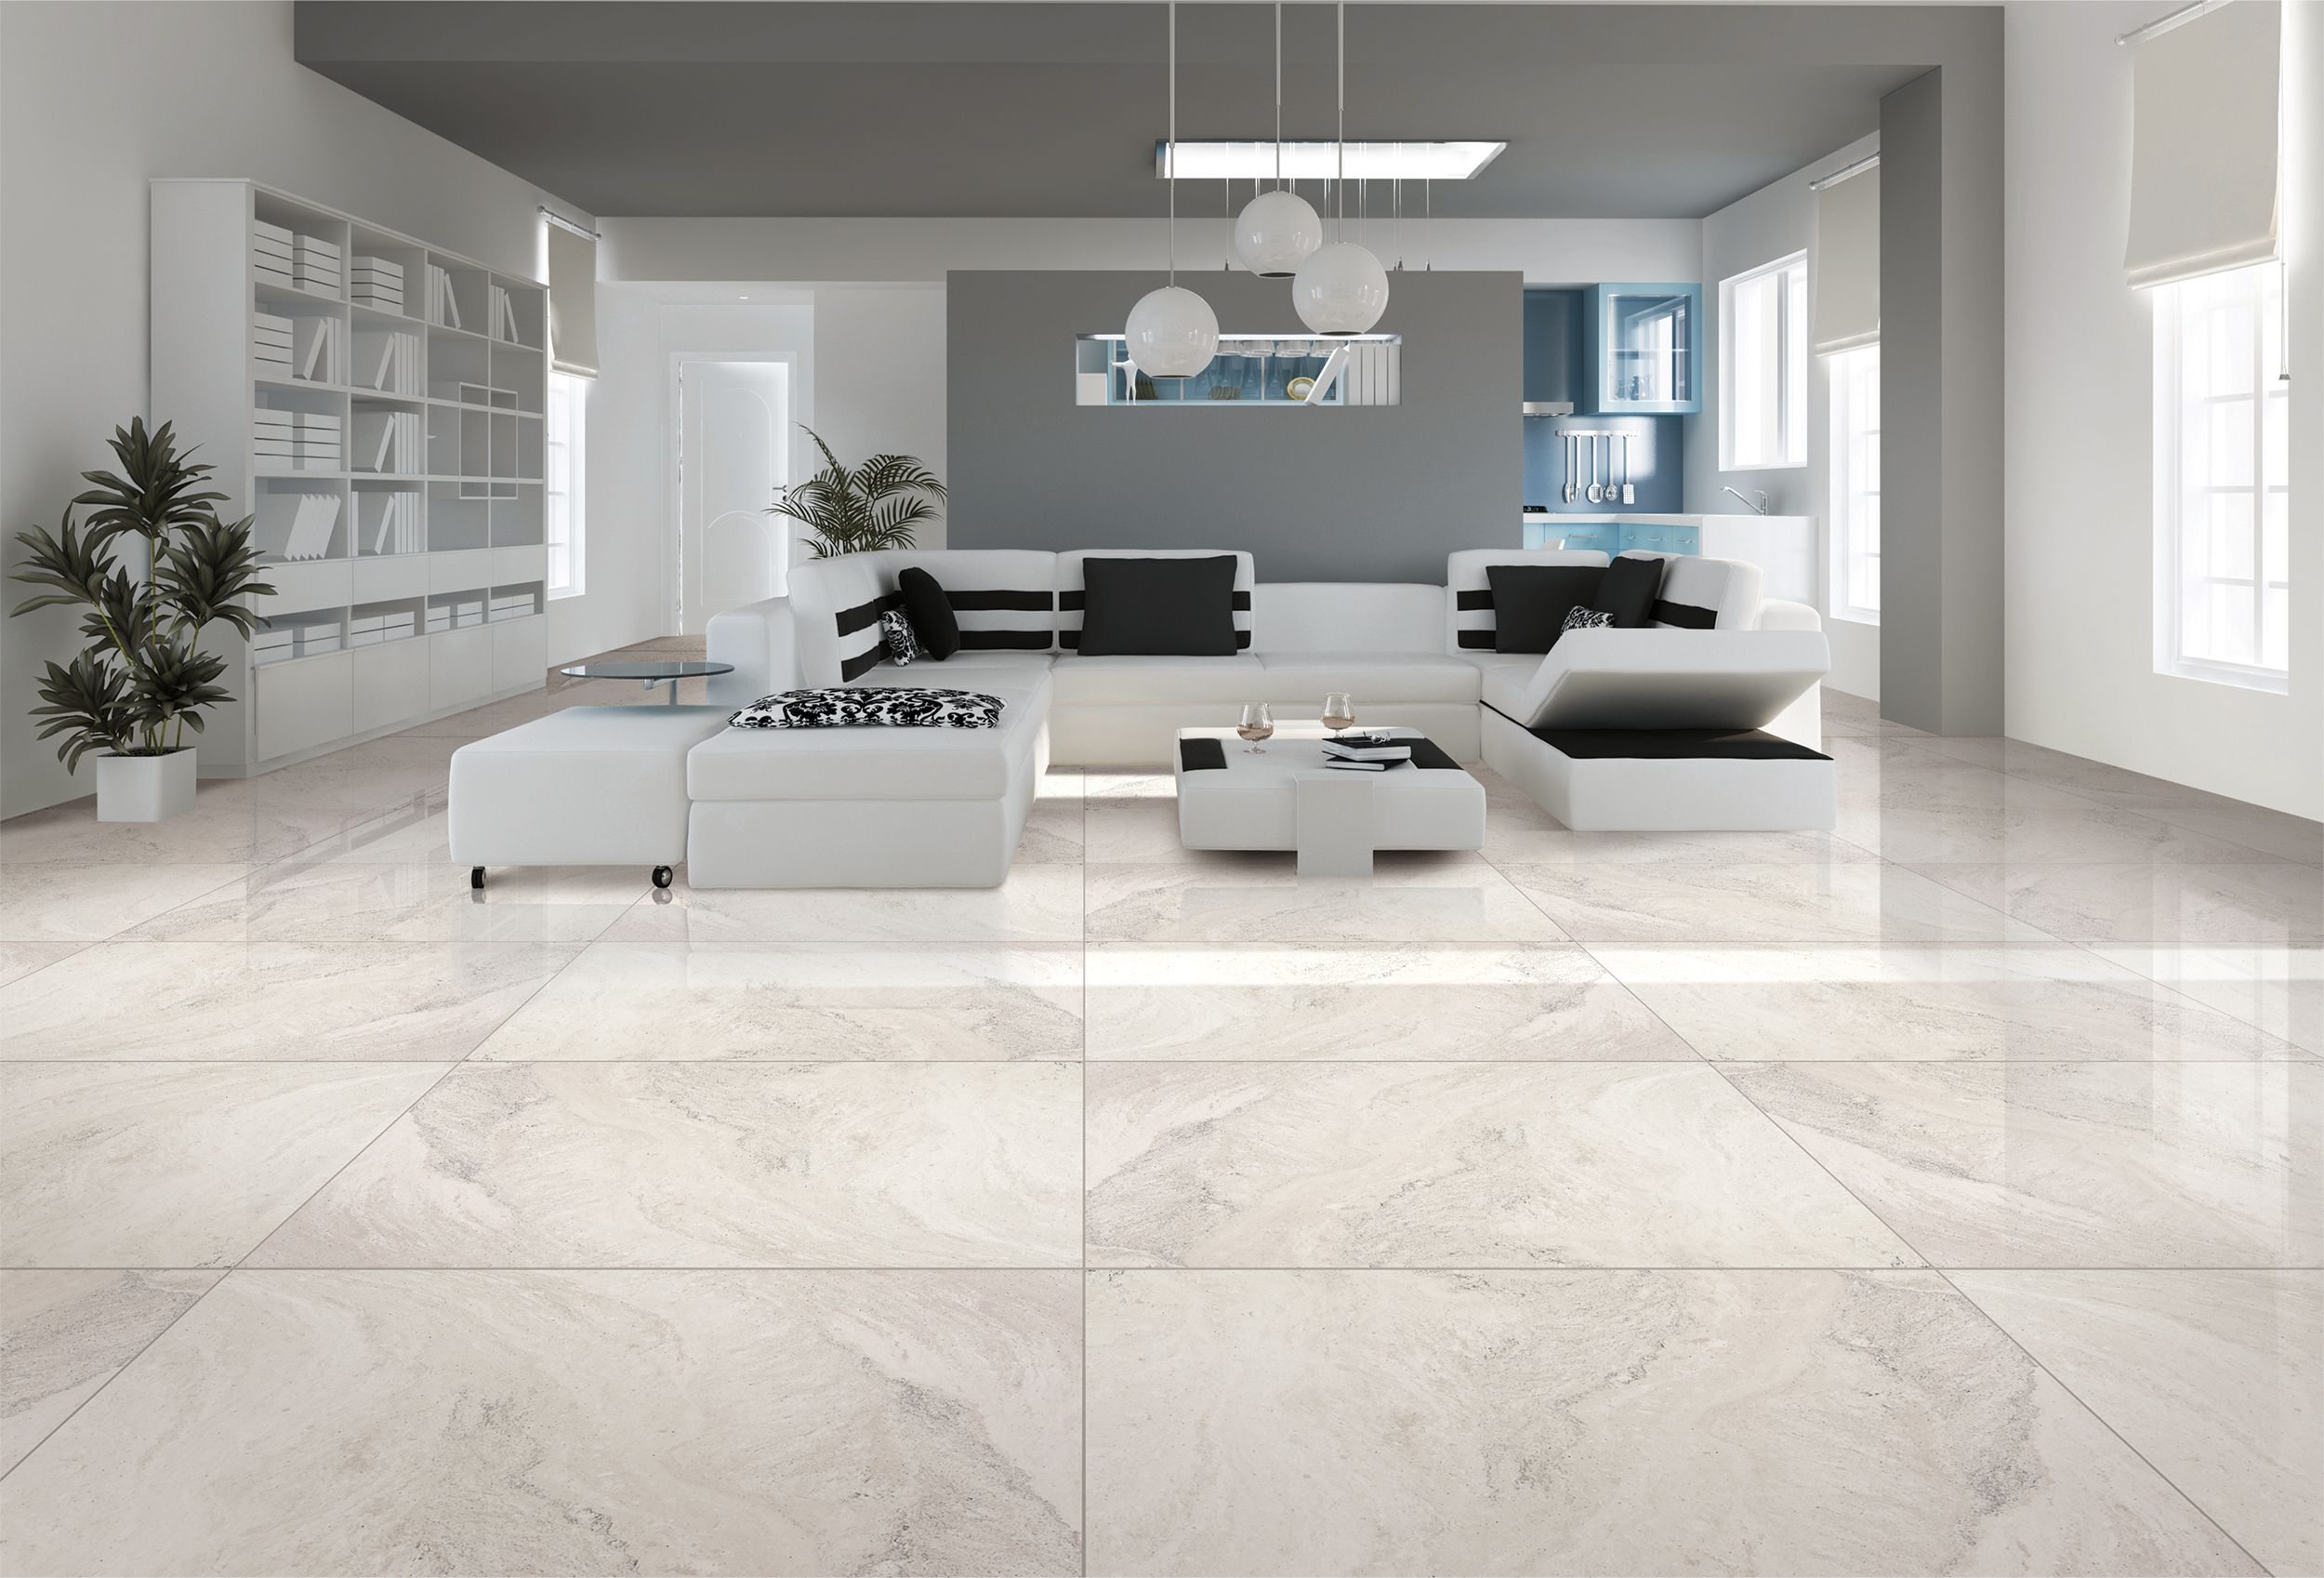 Kajaria Tiles Introduces Its Most Innovative Range Of Large Format Polished Vitrified Tiles The Gra Living Room Tiles Tile Floor Living Room Floor Tile Design